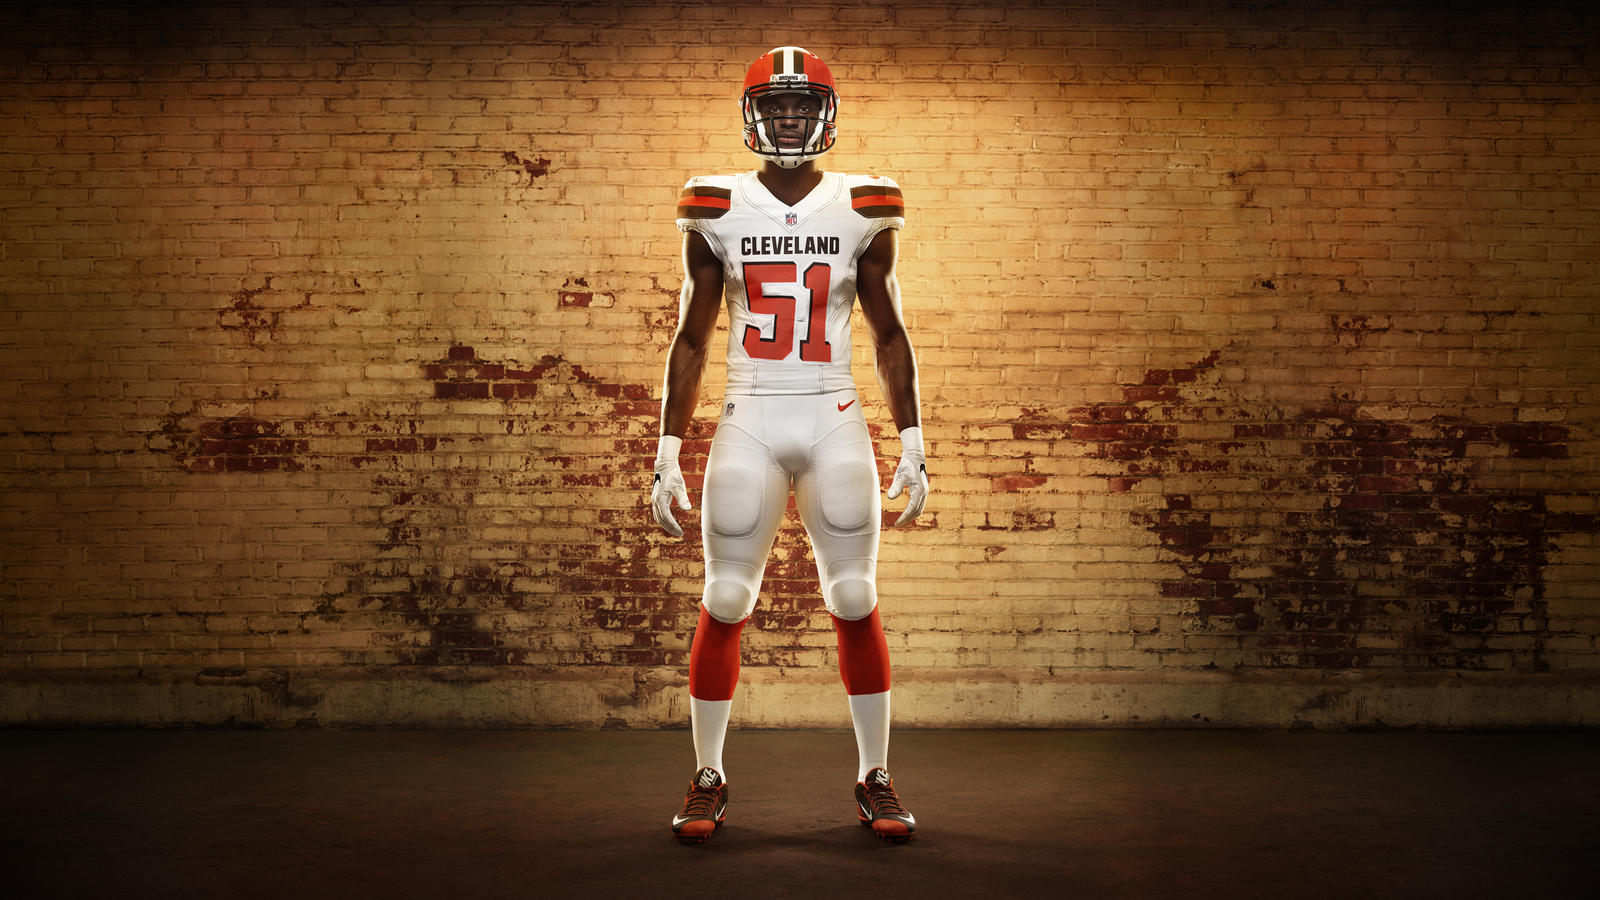 45626_268352_01a_Nike_FB_Cleveland_Barkevious_Mingo_Soldiers_0032_16X9